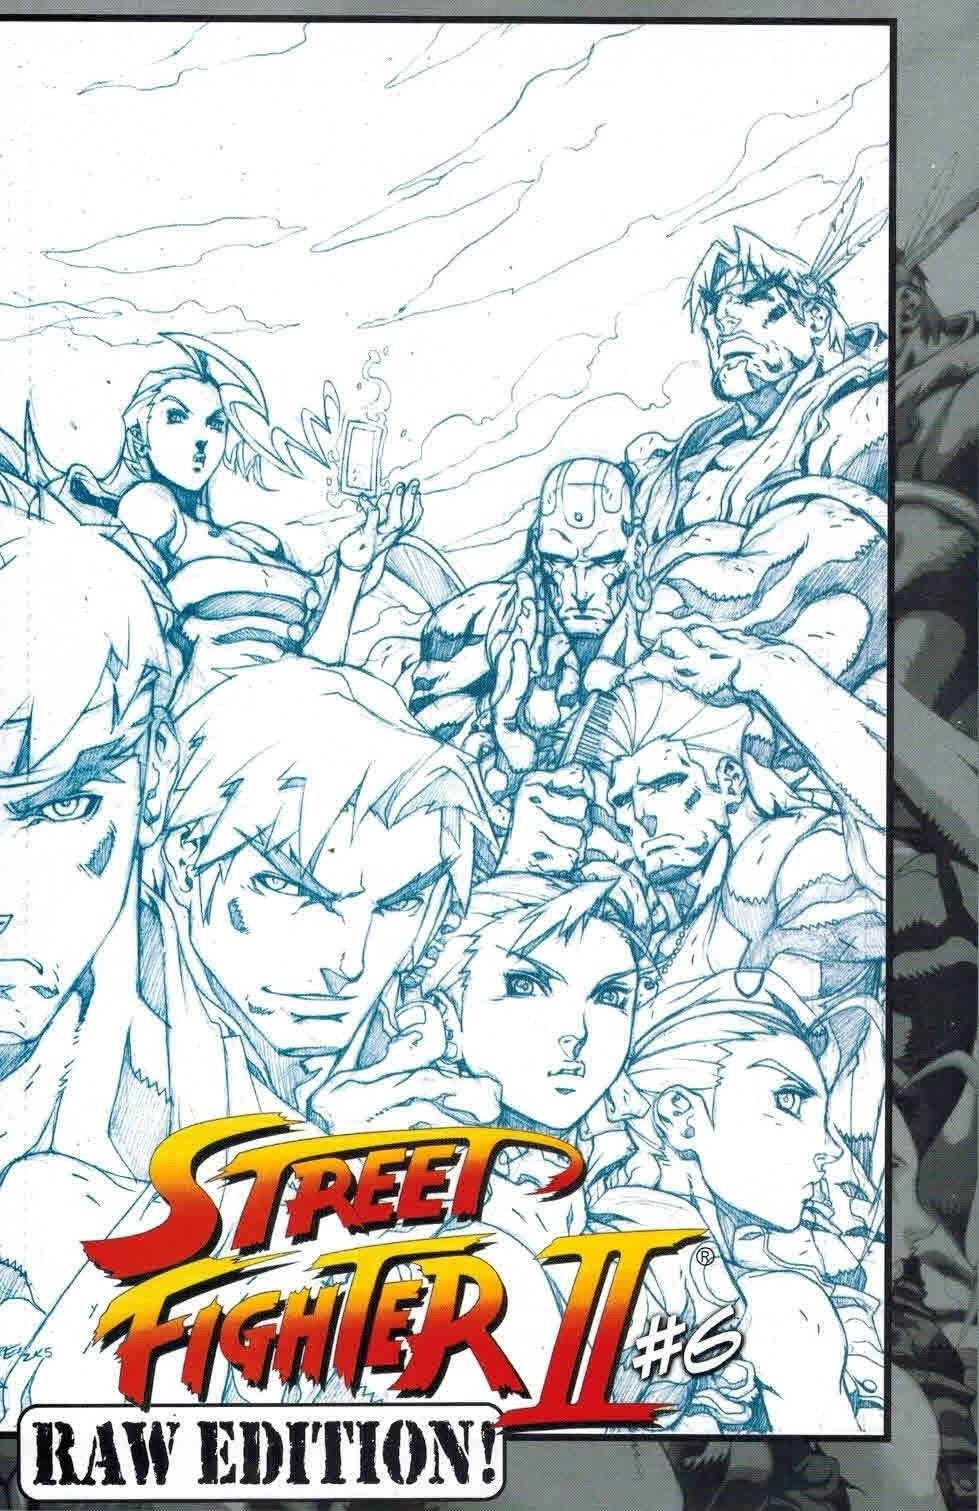 Street Fighter II Issue 6 (November 2006) (Raw Edition)